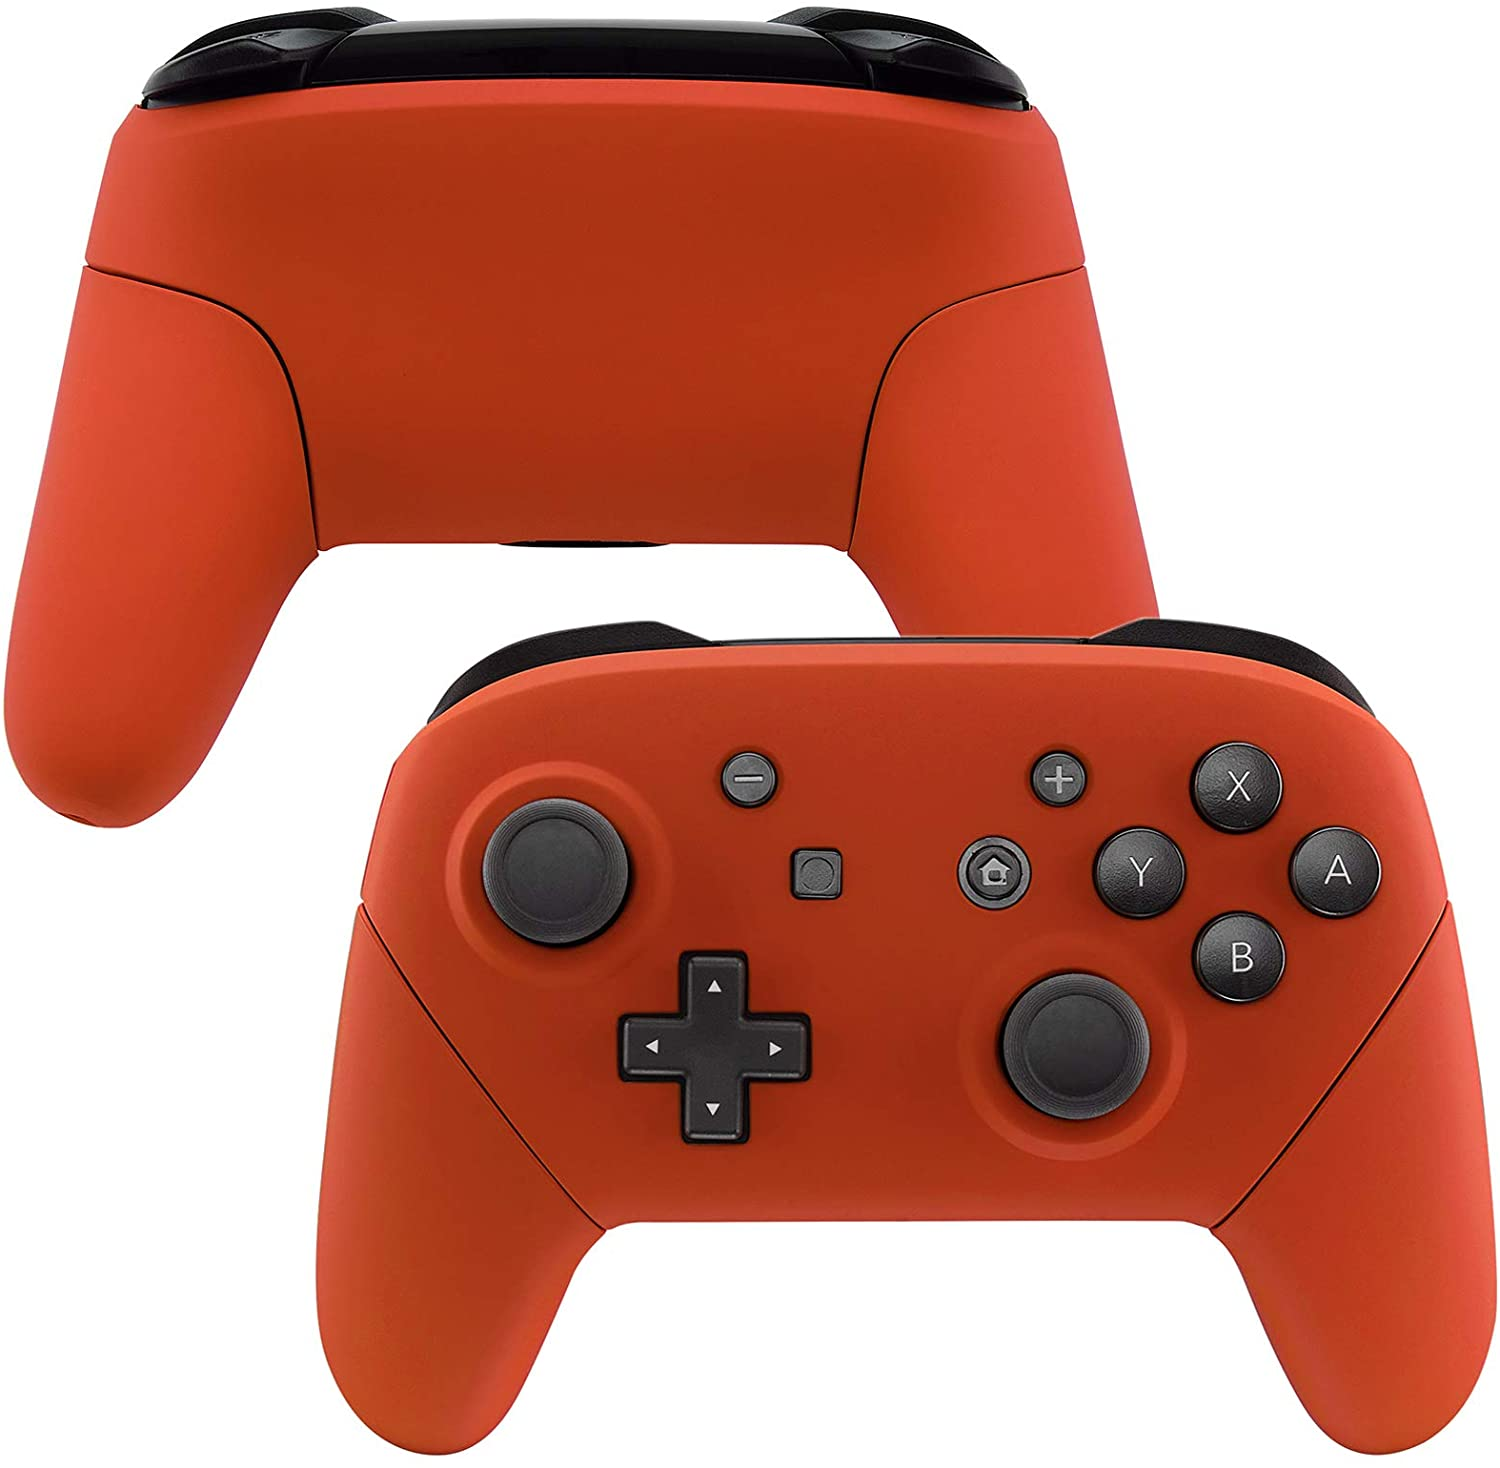 eXtremeRate Orange Faceplate Backplate Handles for Nintendo Switch Pro Controller, Soft Touch DIY Replacement Grip Housing Shell Cover for Nintendo Switch Pro - Controller NOT Included